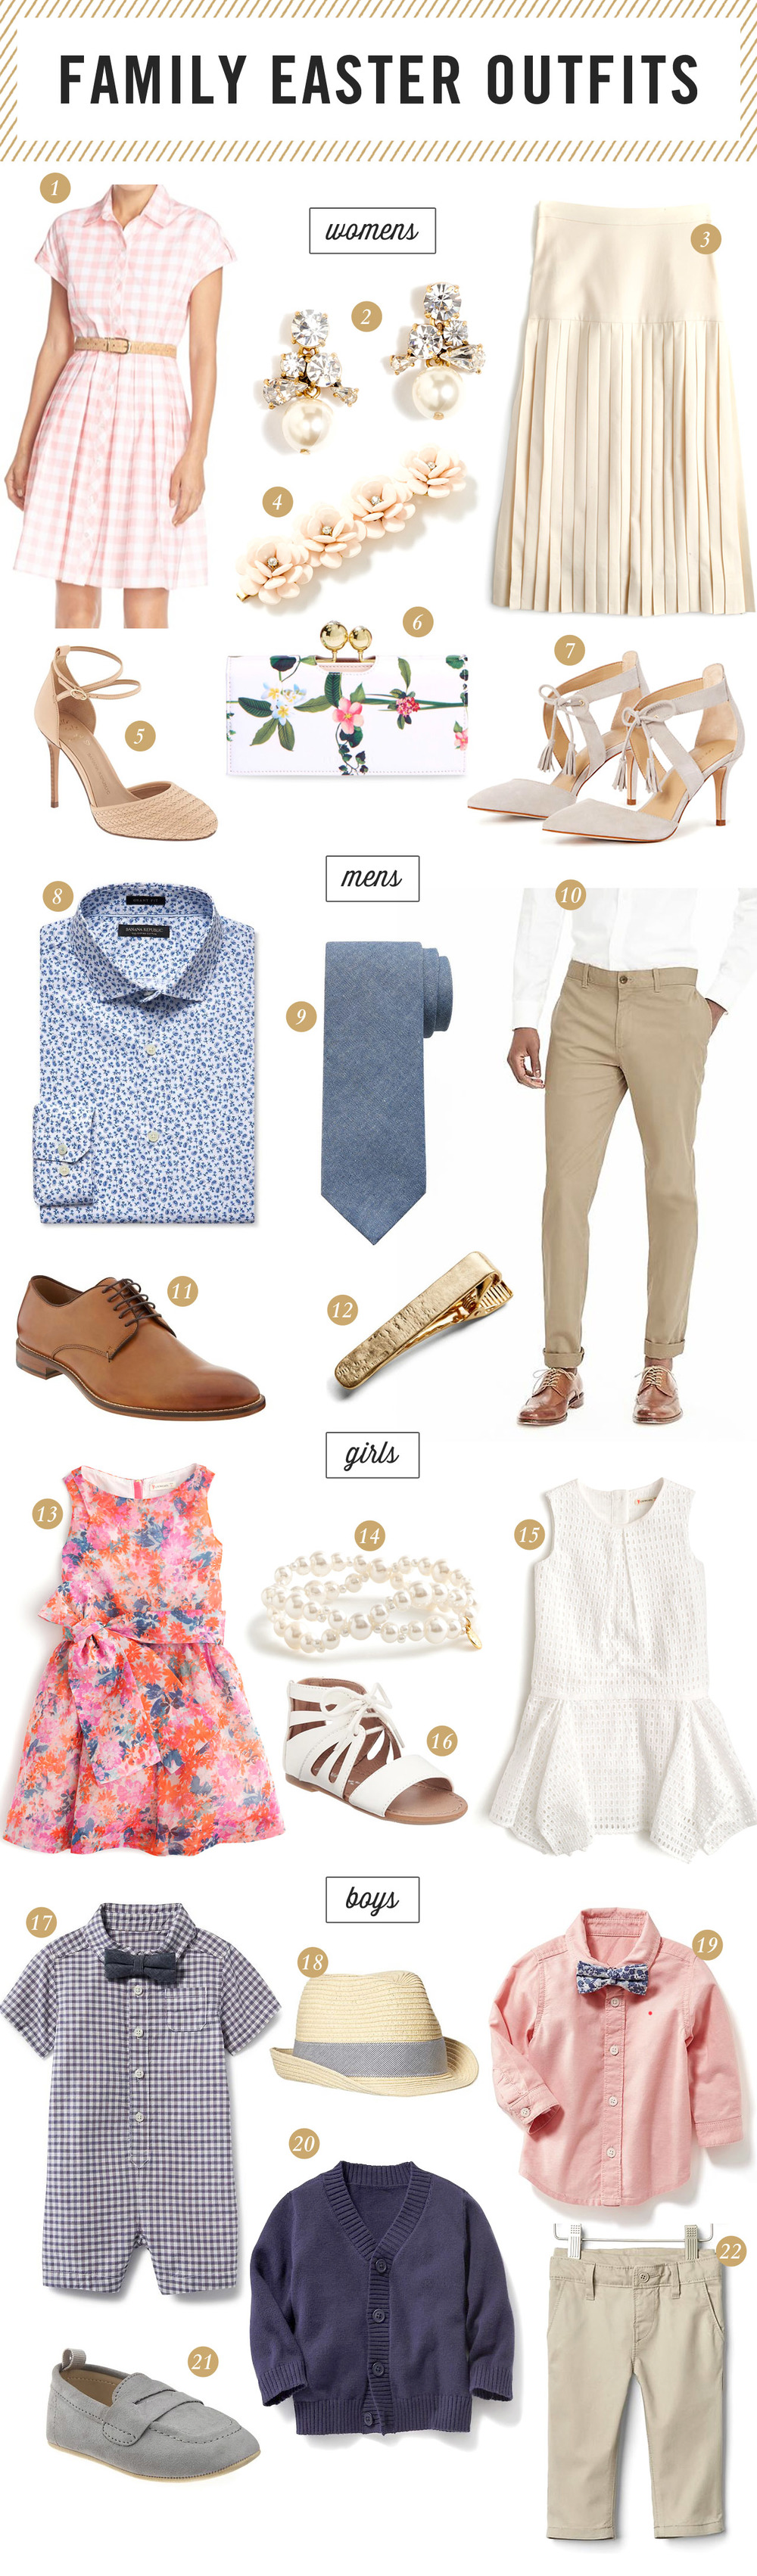 Easter Outfits for girls and men